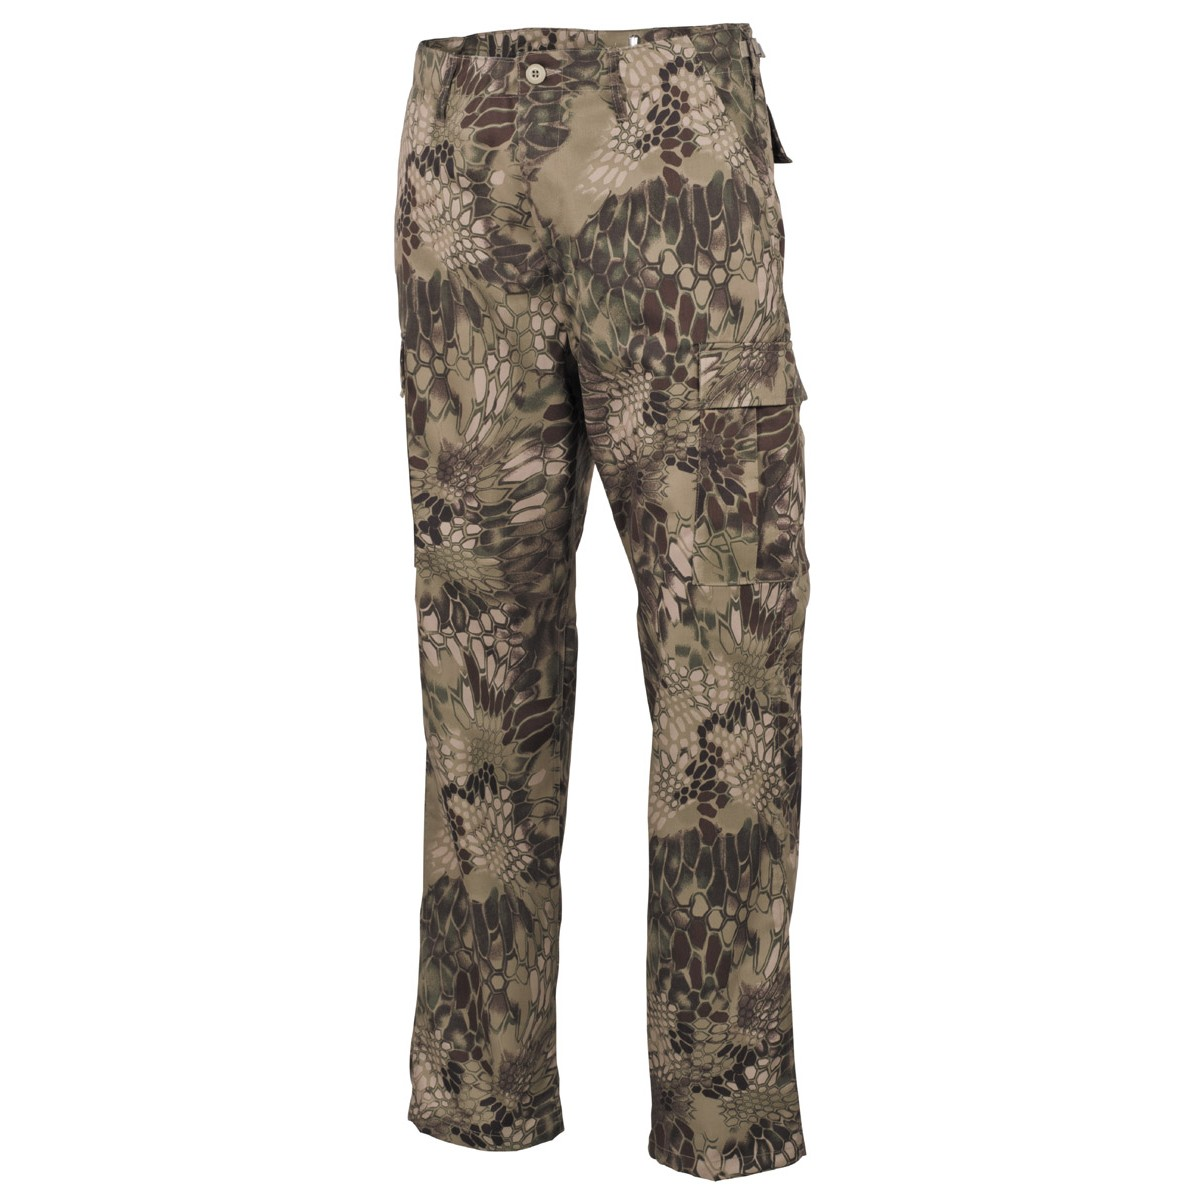 Hunting Snake FG Camo Pattern BDU Field Pants